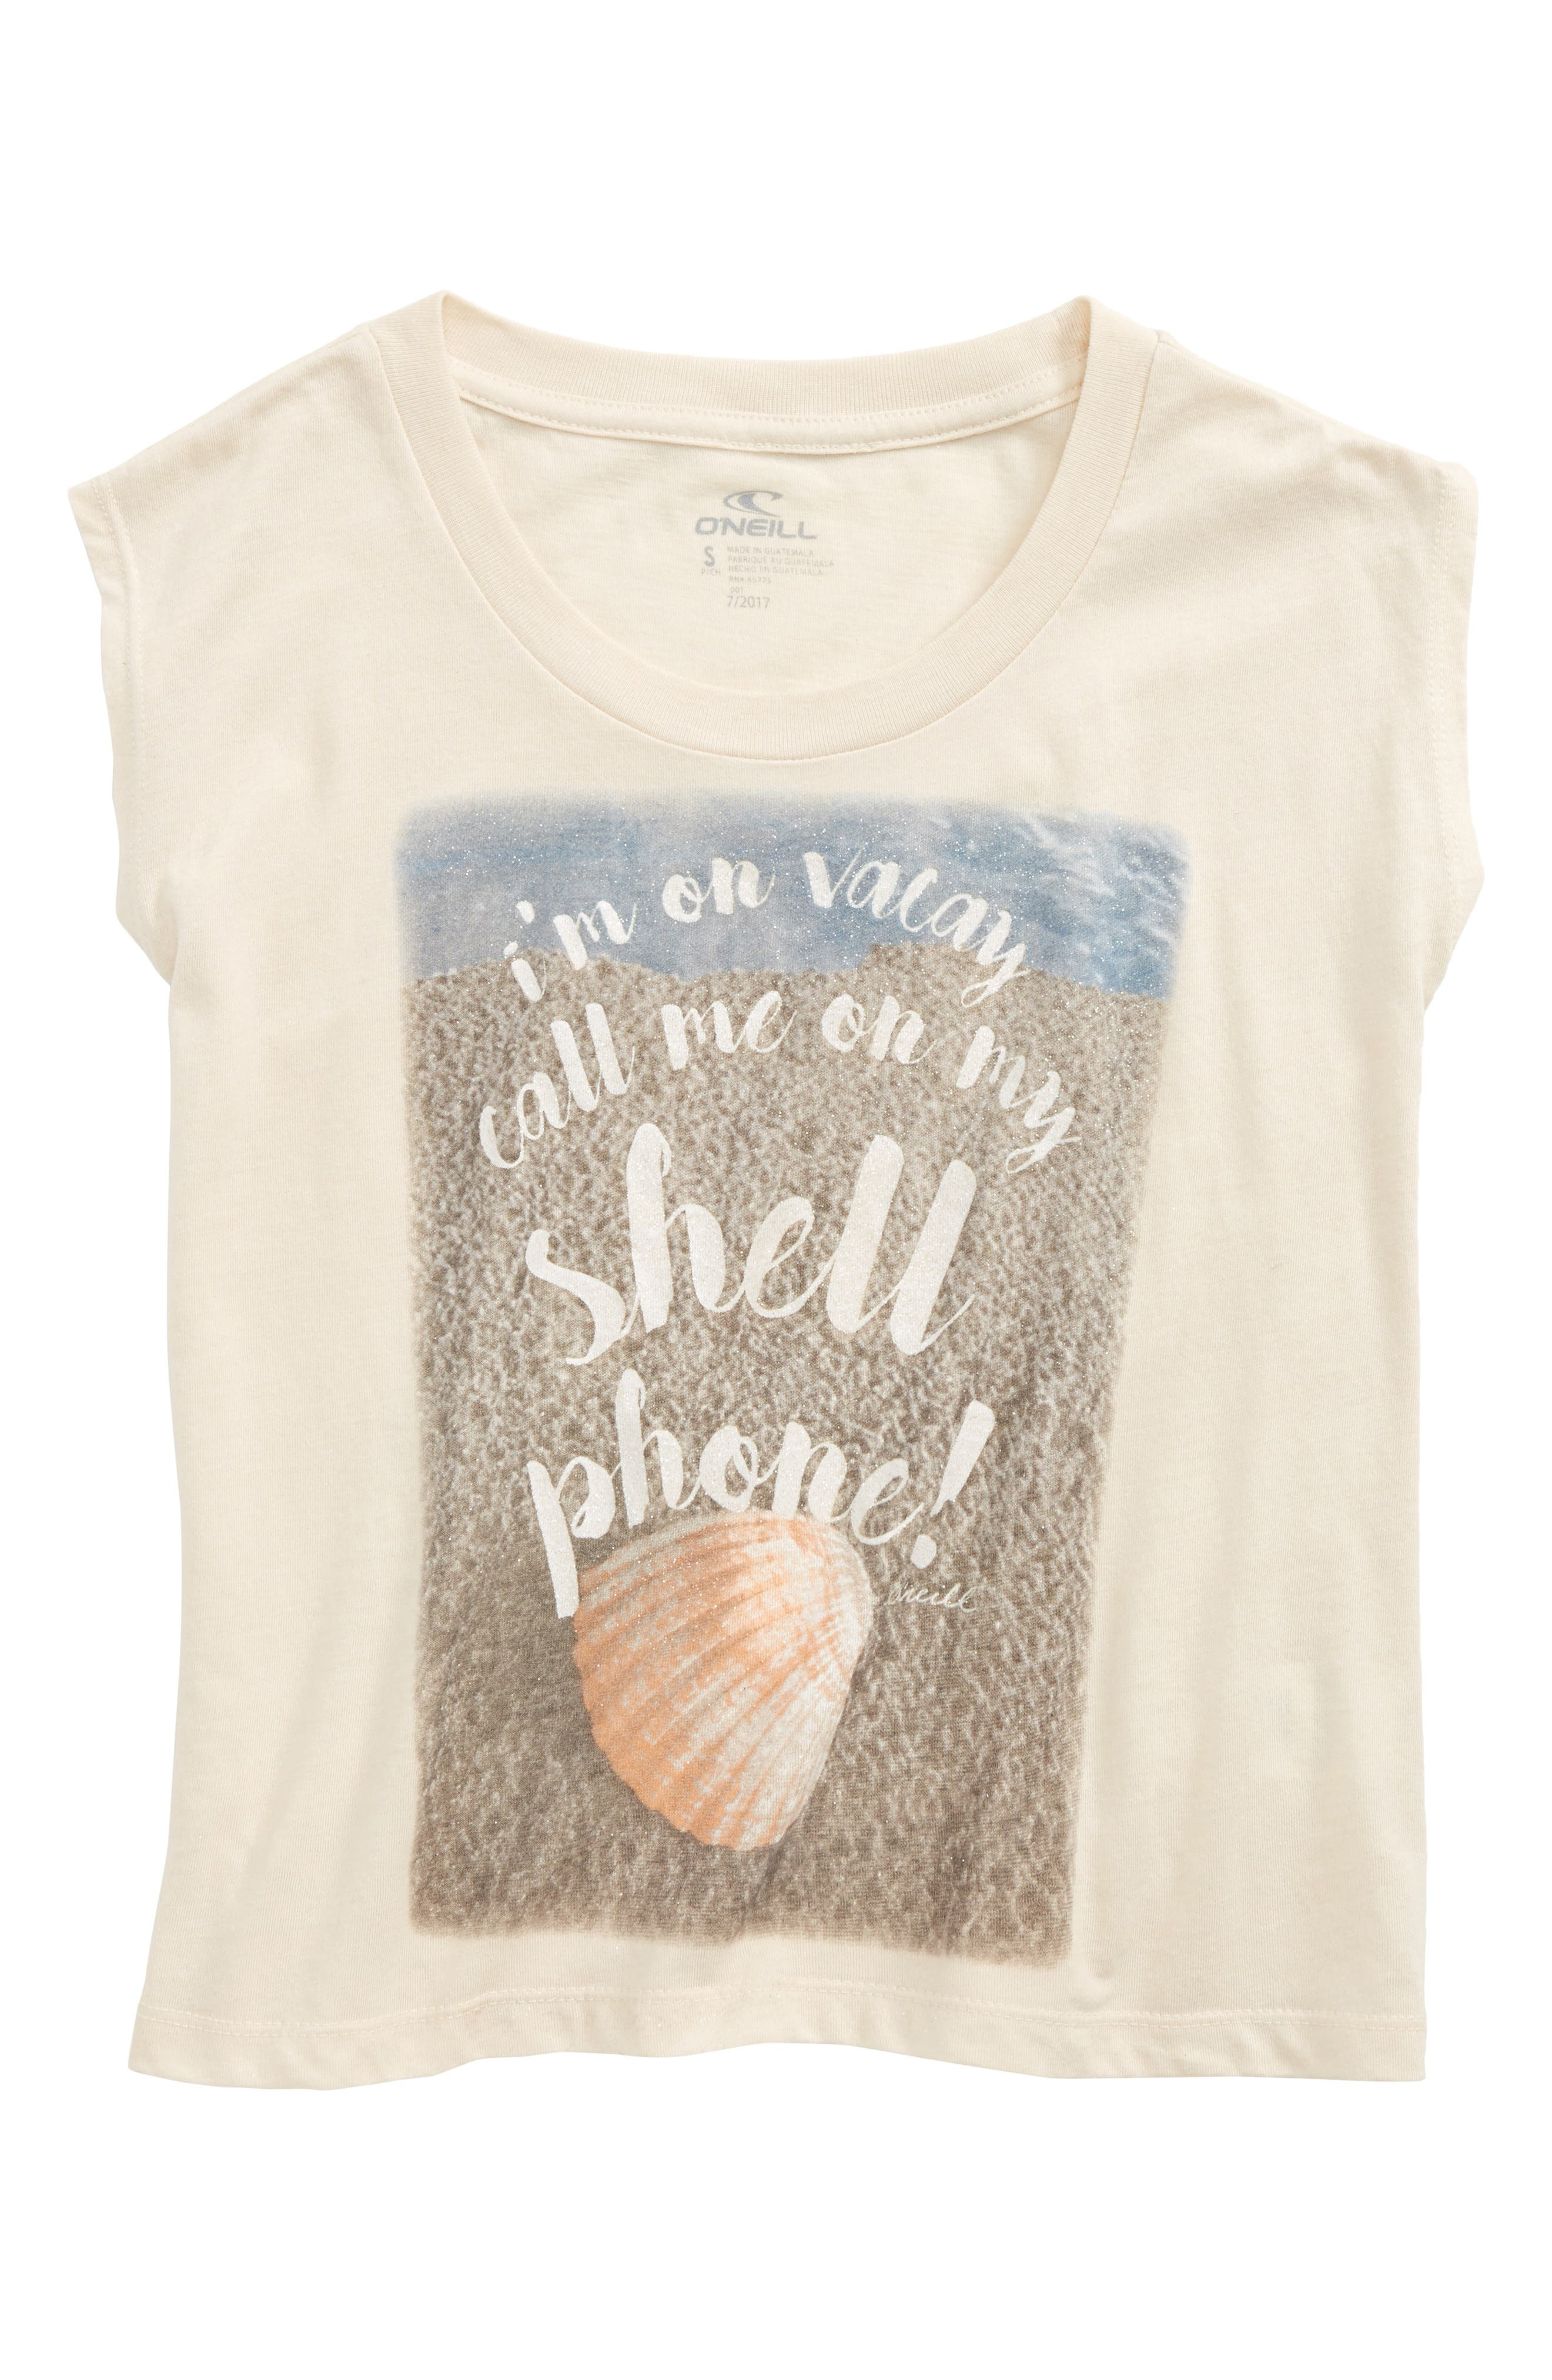 Shell Phone Graphic Print Tee,                         Main,                         color, 250